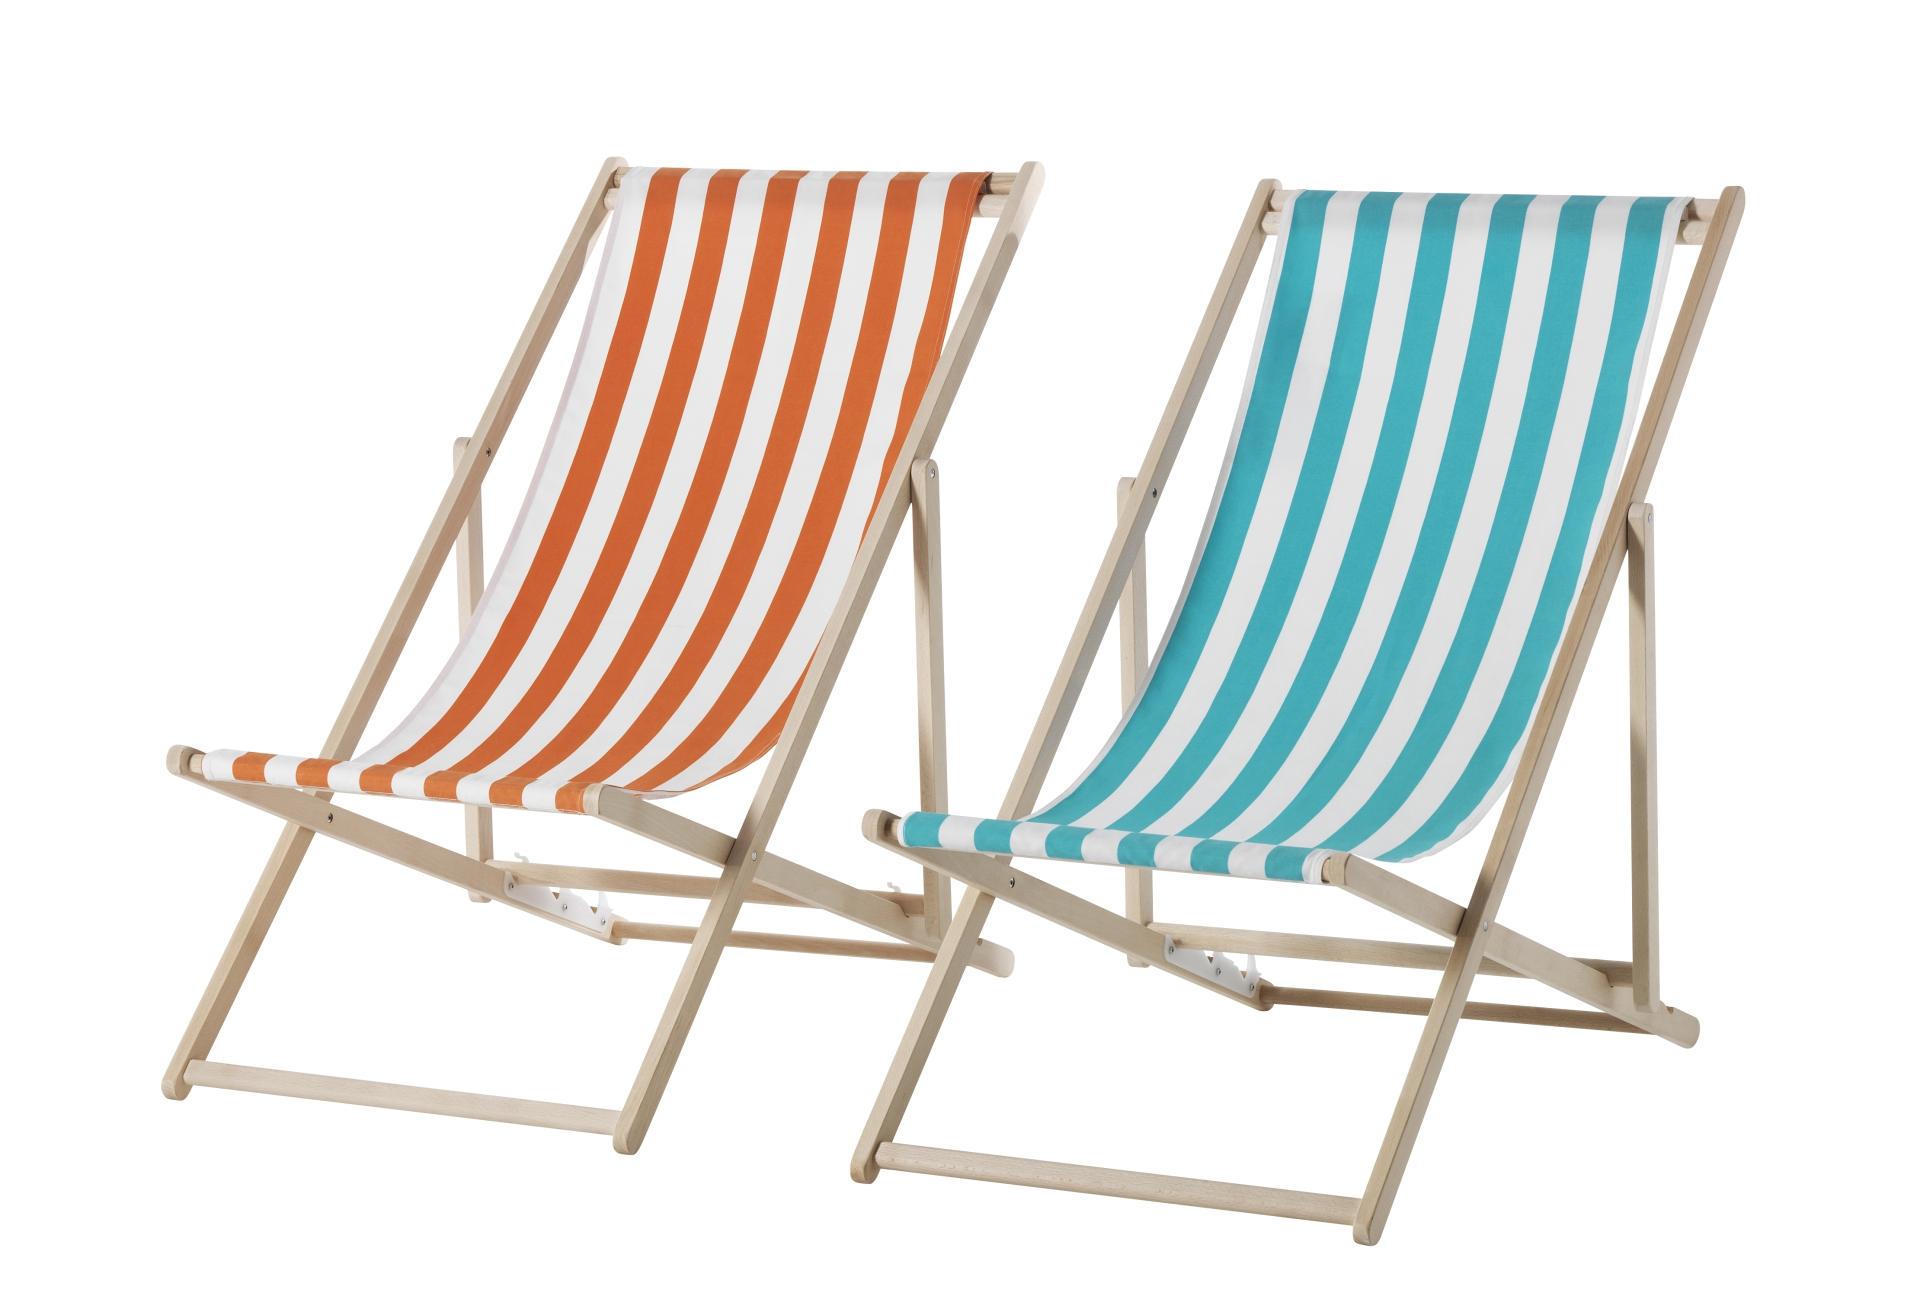 beach chairs with article number